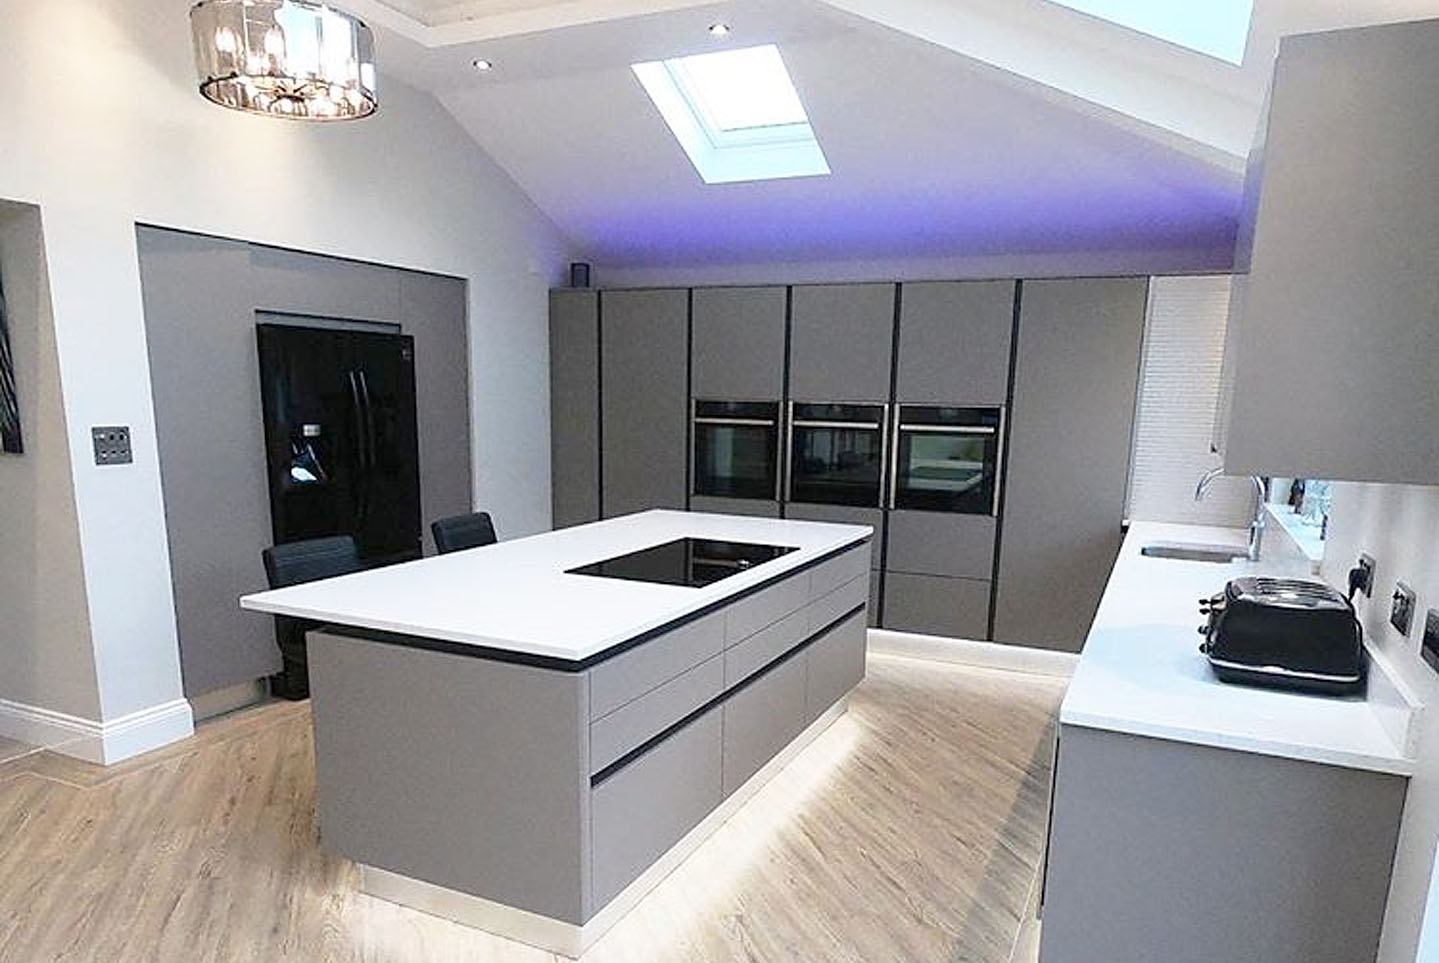 zurfiz true handless basalt grey matt kitchen